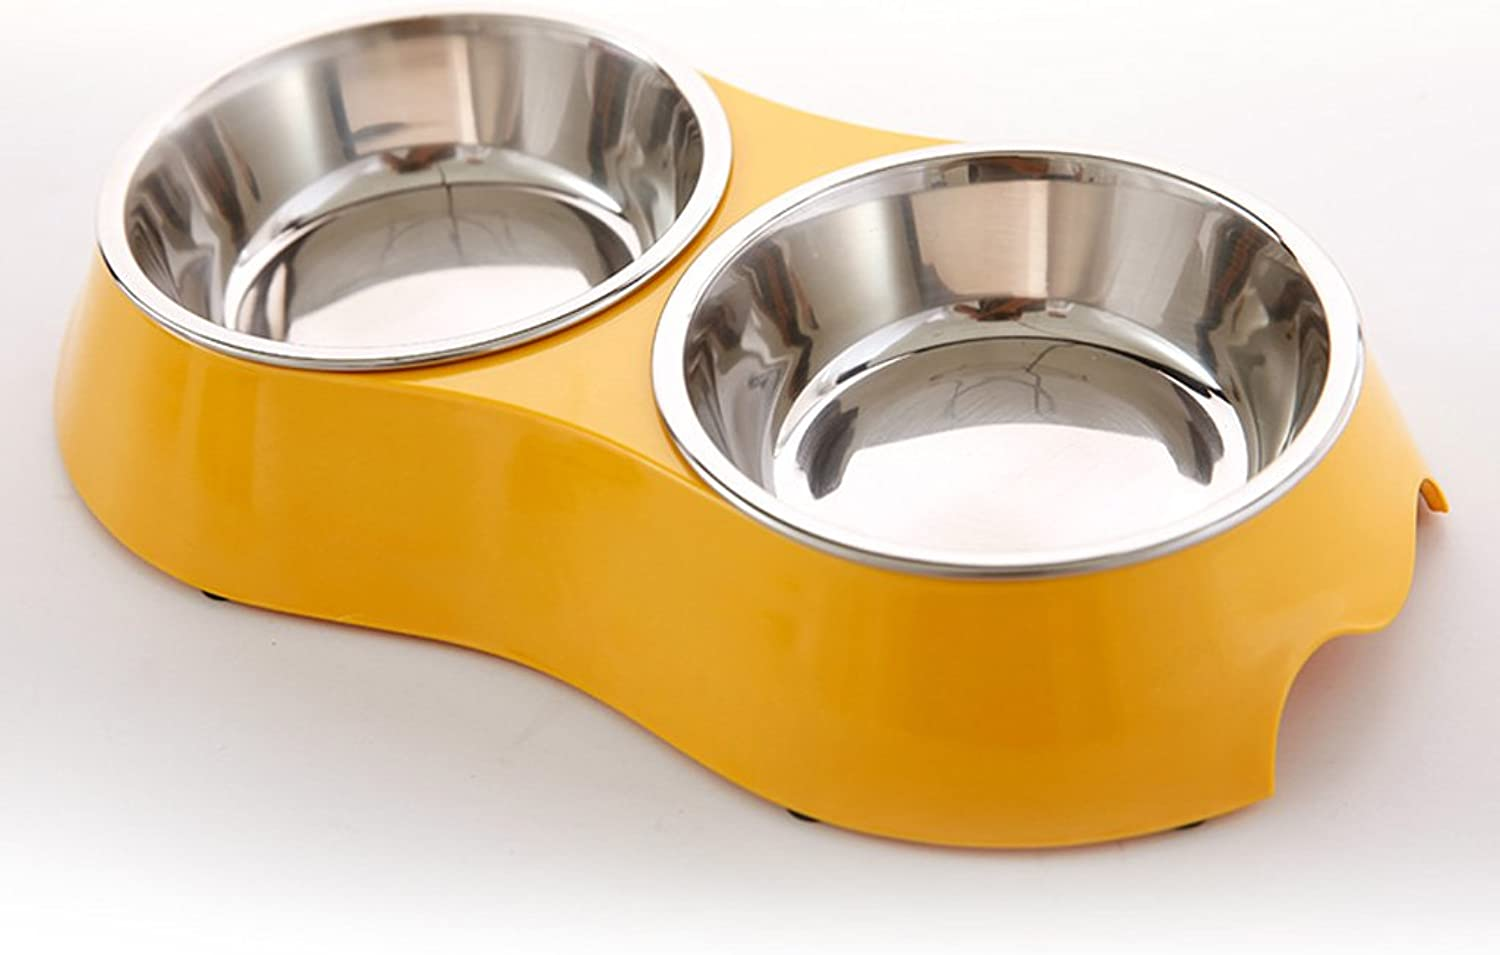 CKH Stainless Steel Dog Bowl Pet Bowls Cats And Dogs Food Bowl Dog Supplies Cats Bowls Cats And Dogs Single Double Bowls Pet Supplies (color   Yellow)